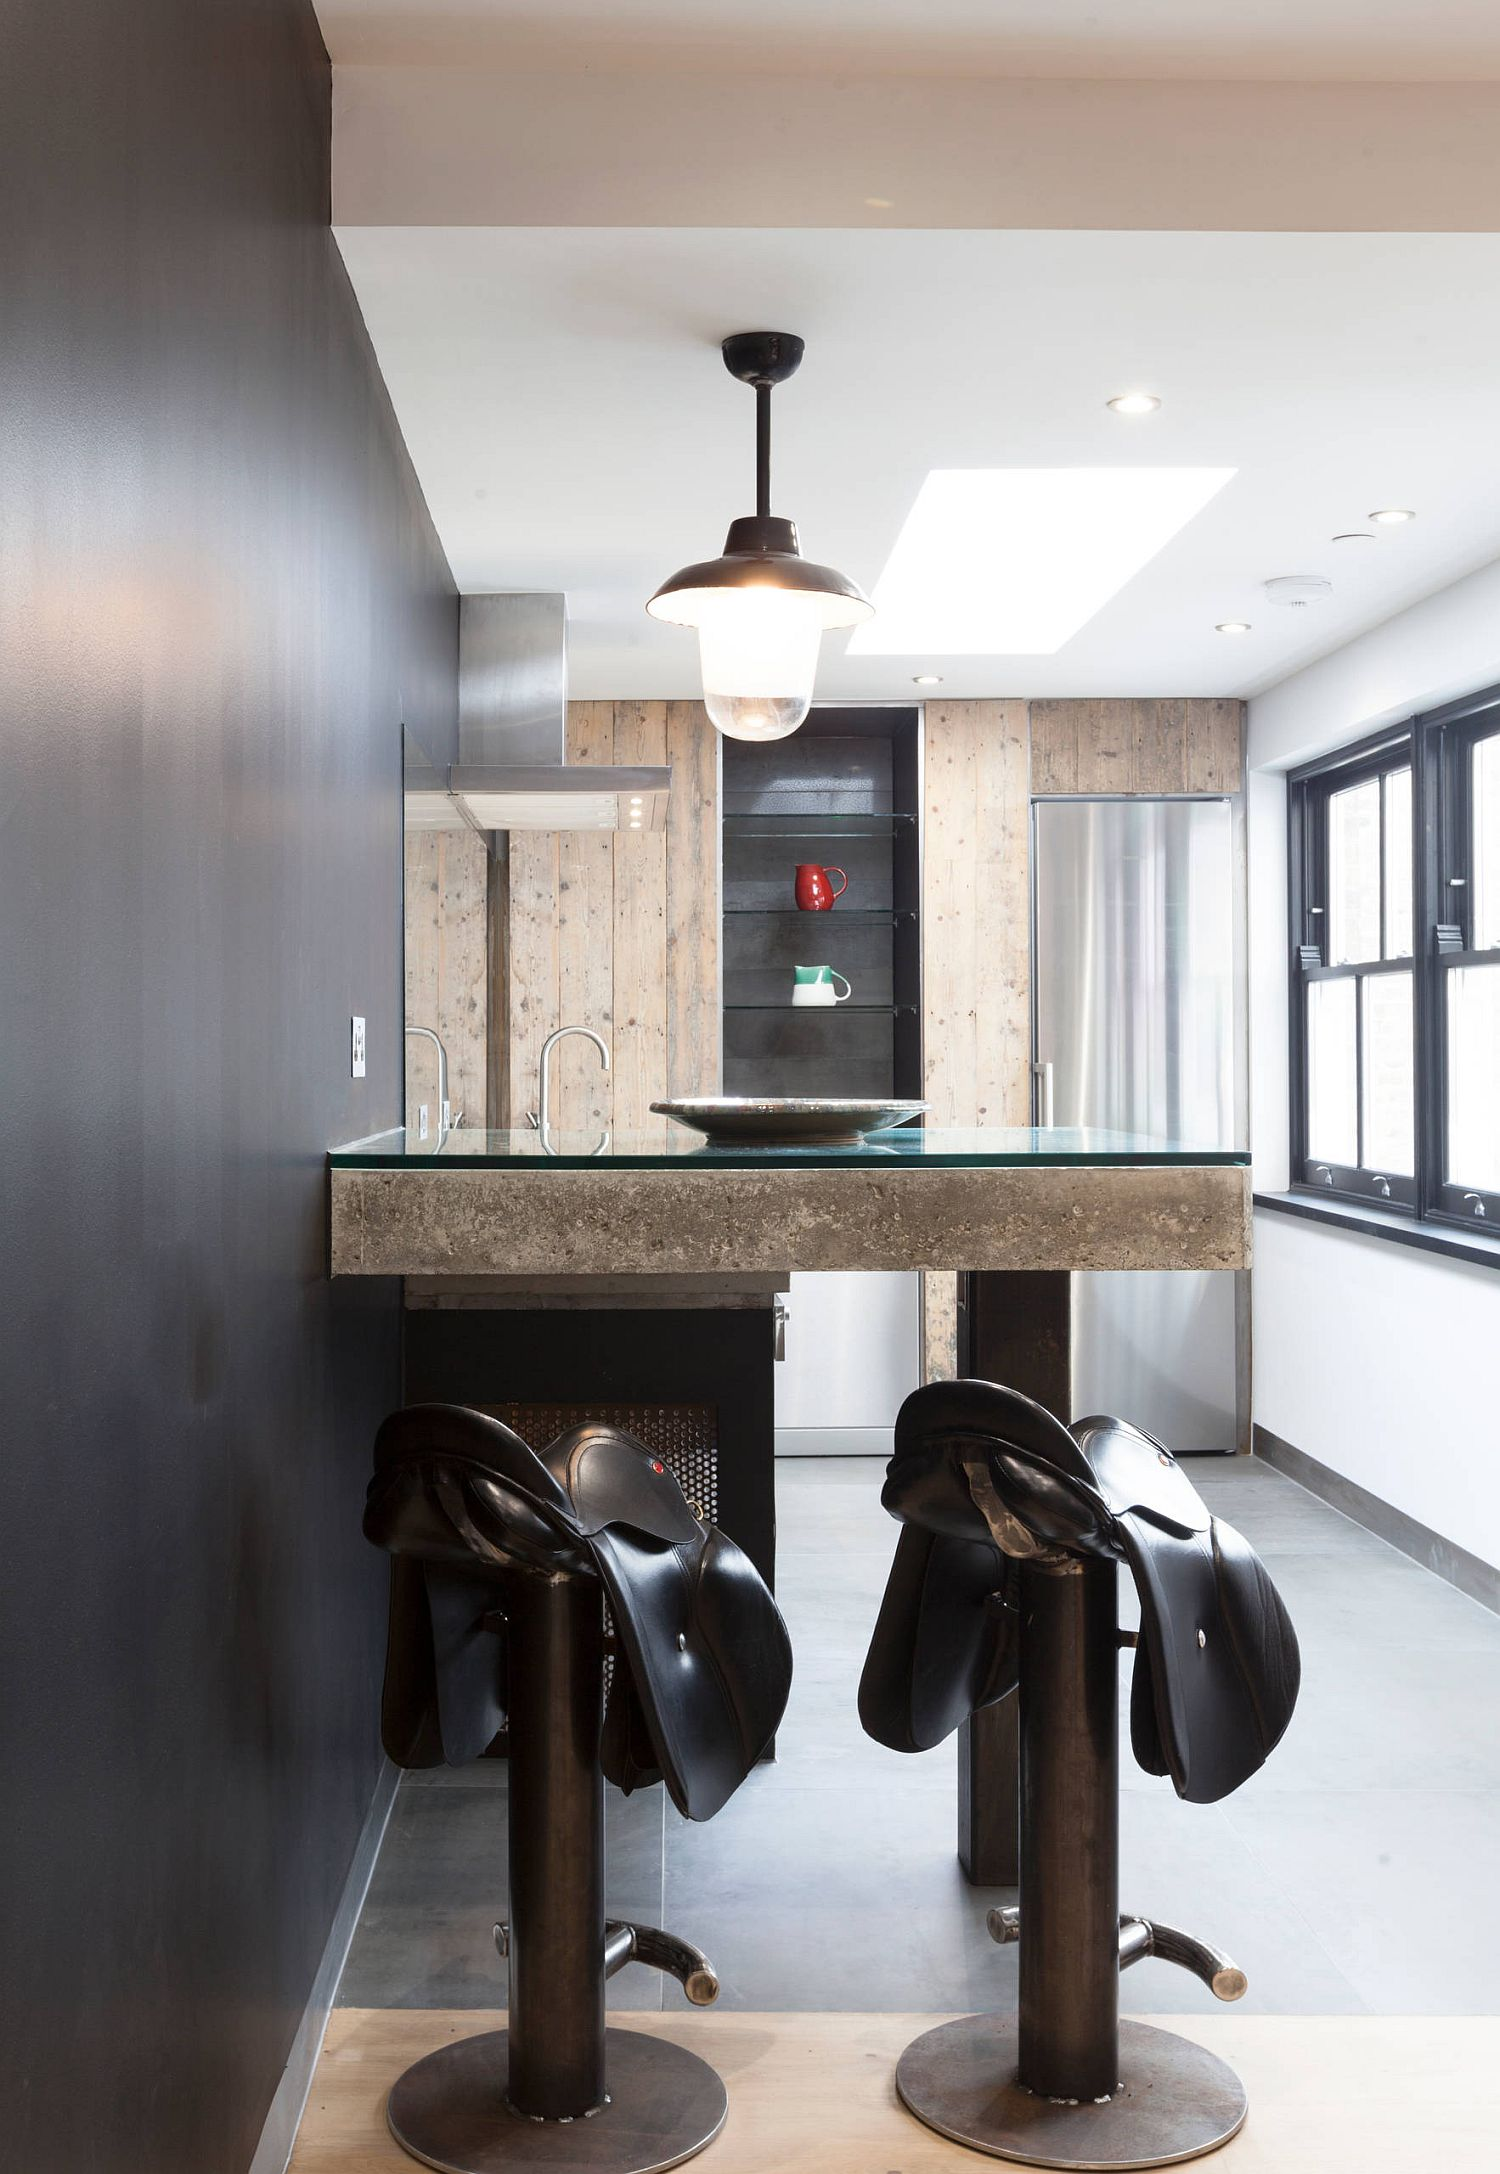 Saddle-bar-stools-for-those-who-adore-a-bit-of-cowboy-charm-in-the-kitchen